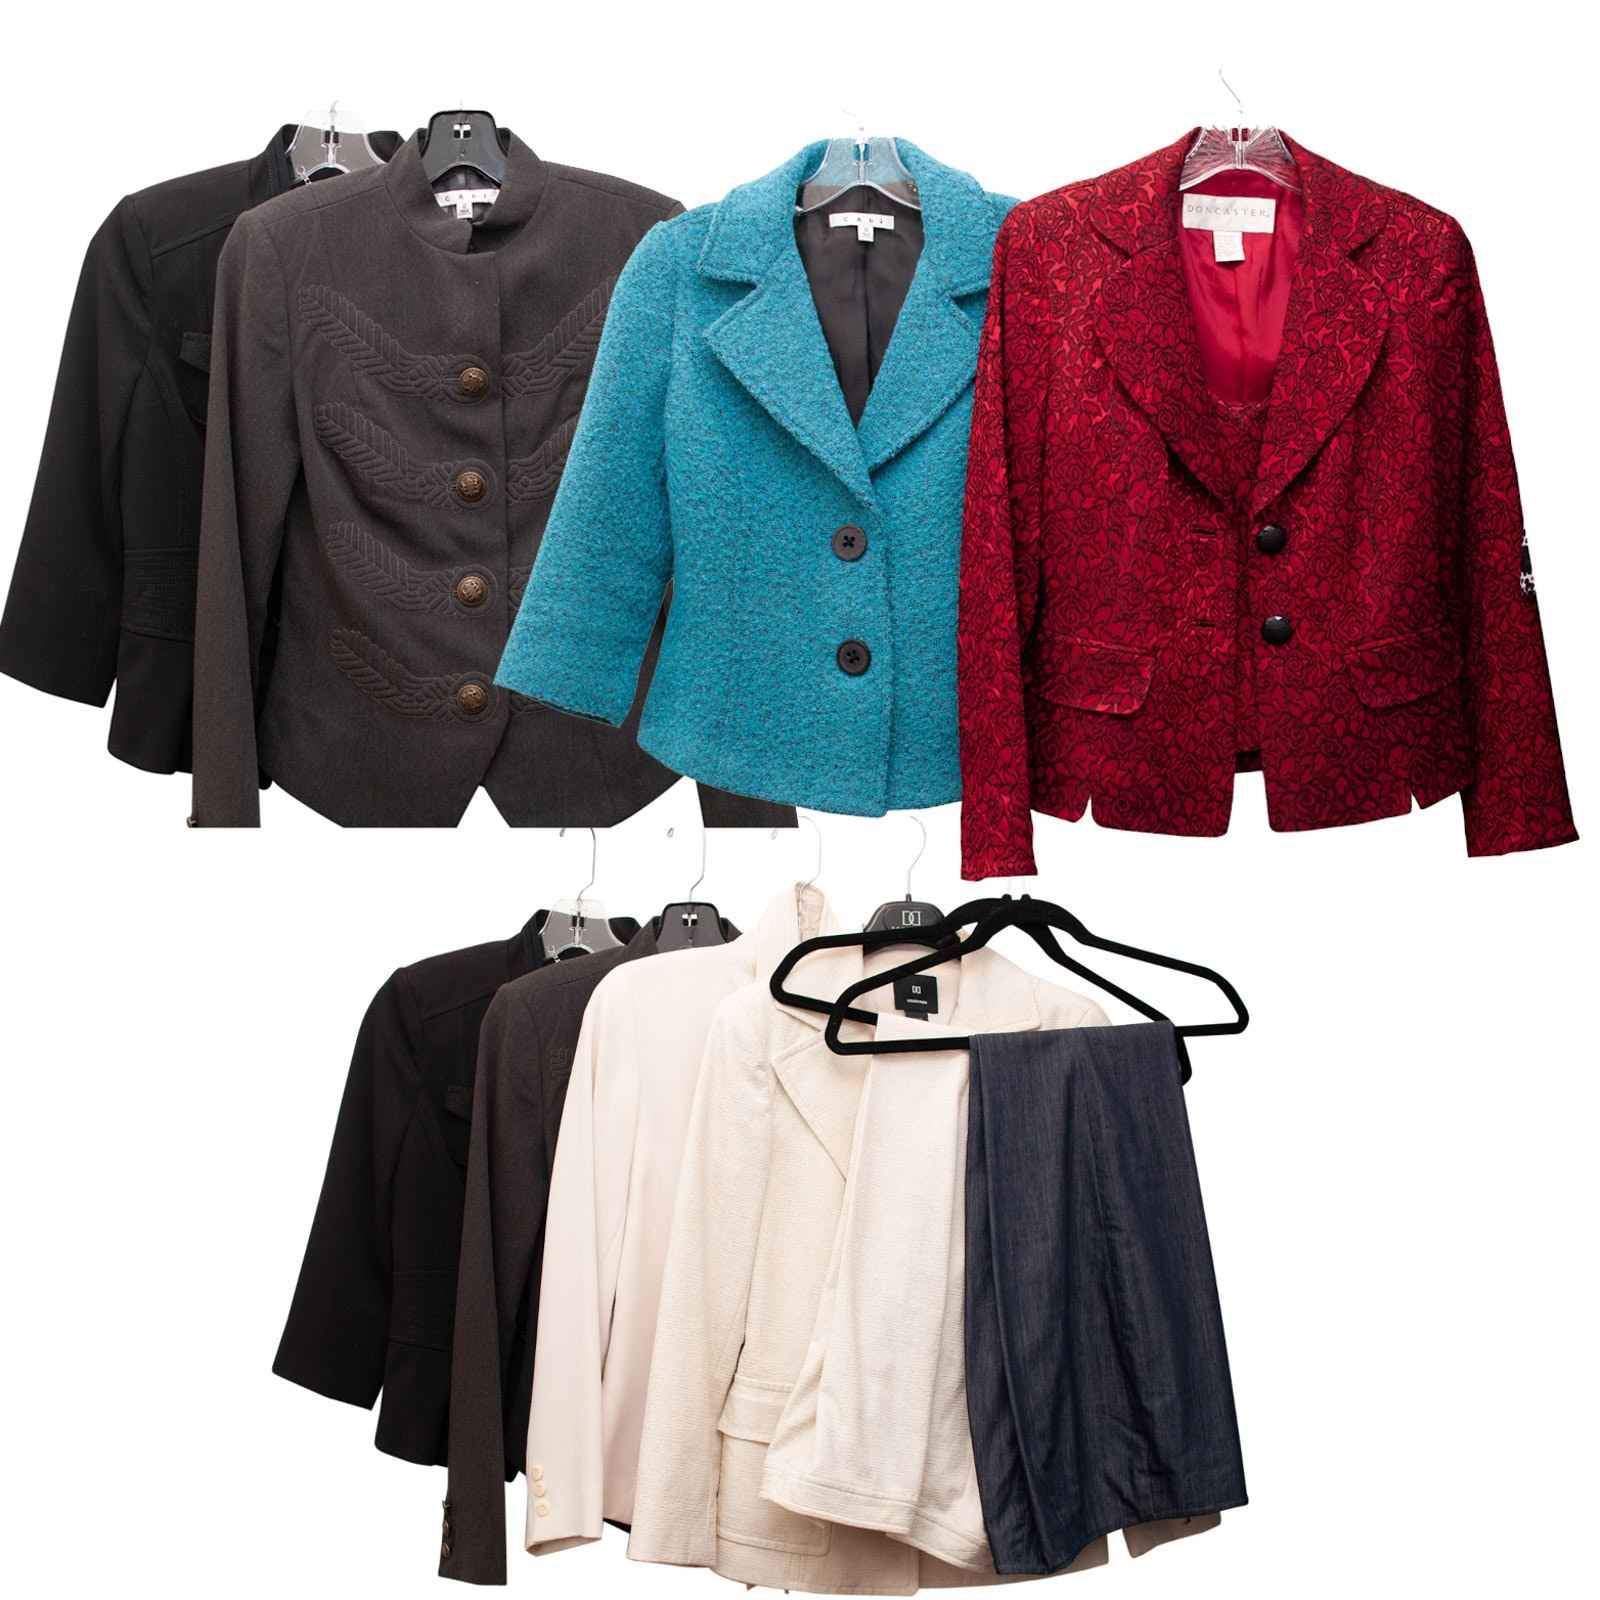 Women's Separates including Cabi, Ann Taylor and Linda Allard for Ellen Tracy